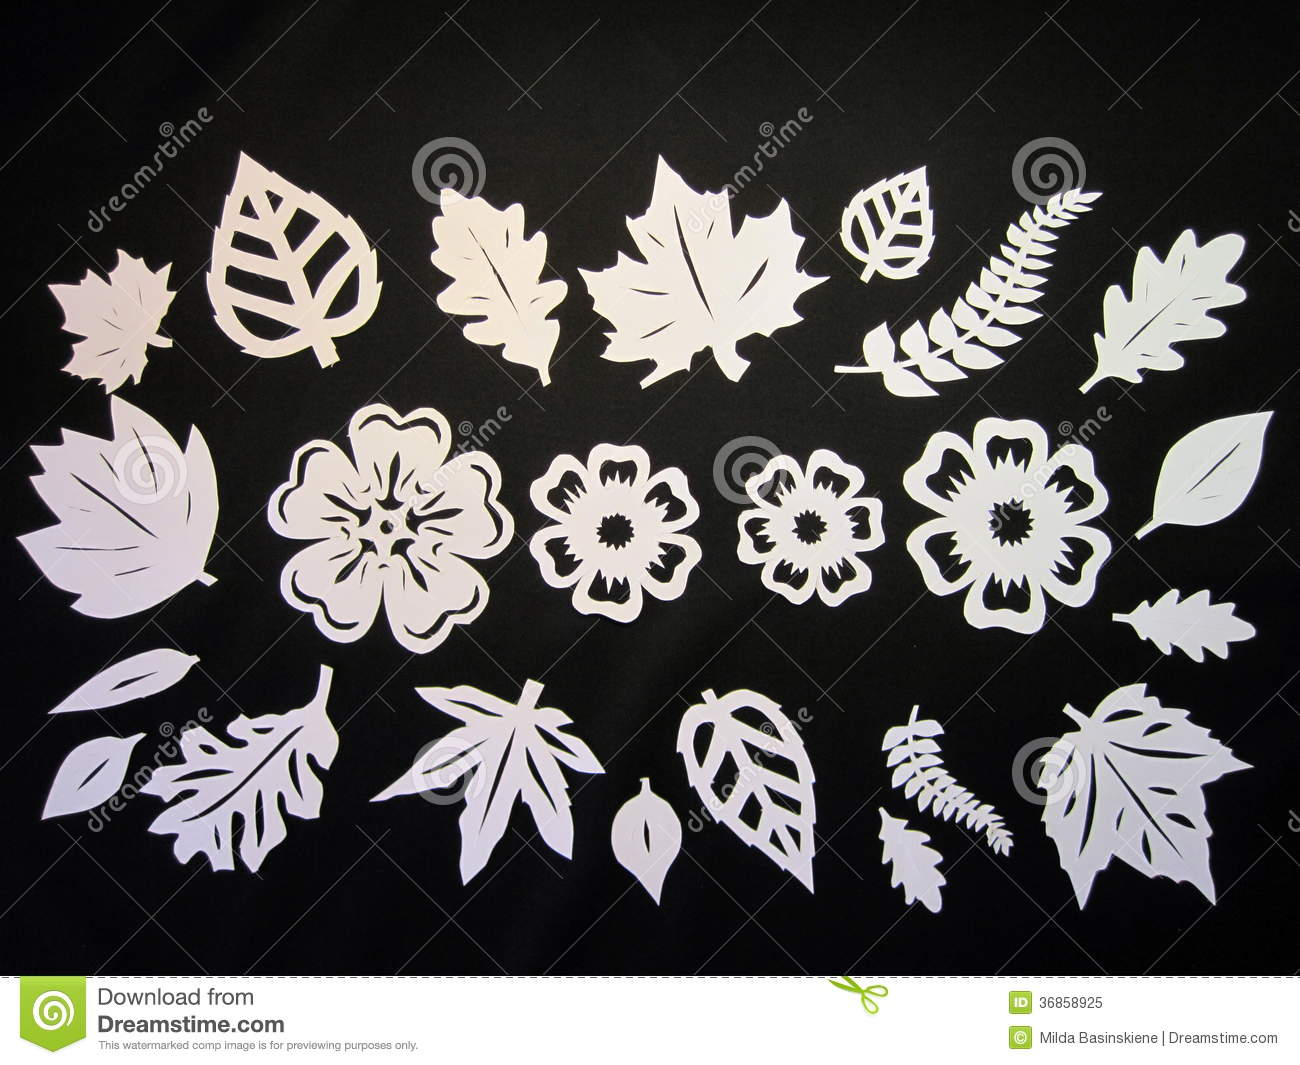 White leaves anf flowers paper cutting stock image image of idea white leaves anf flowers paper cutting mightylinksfo